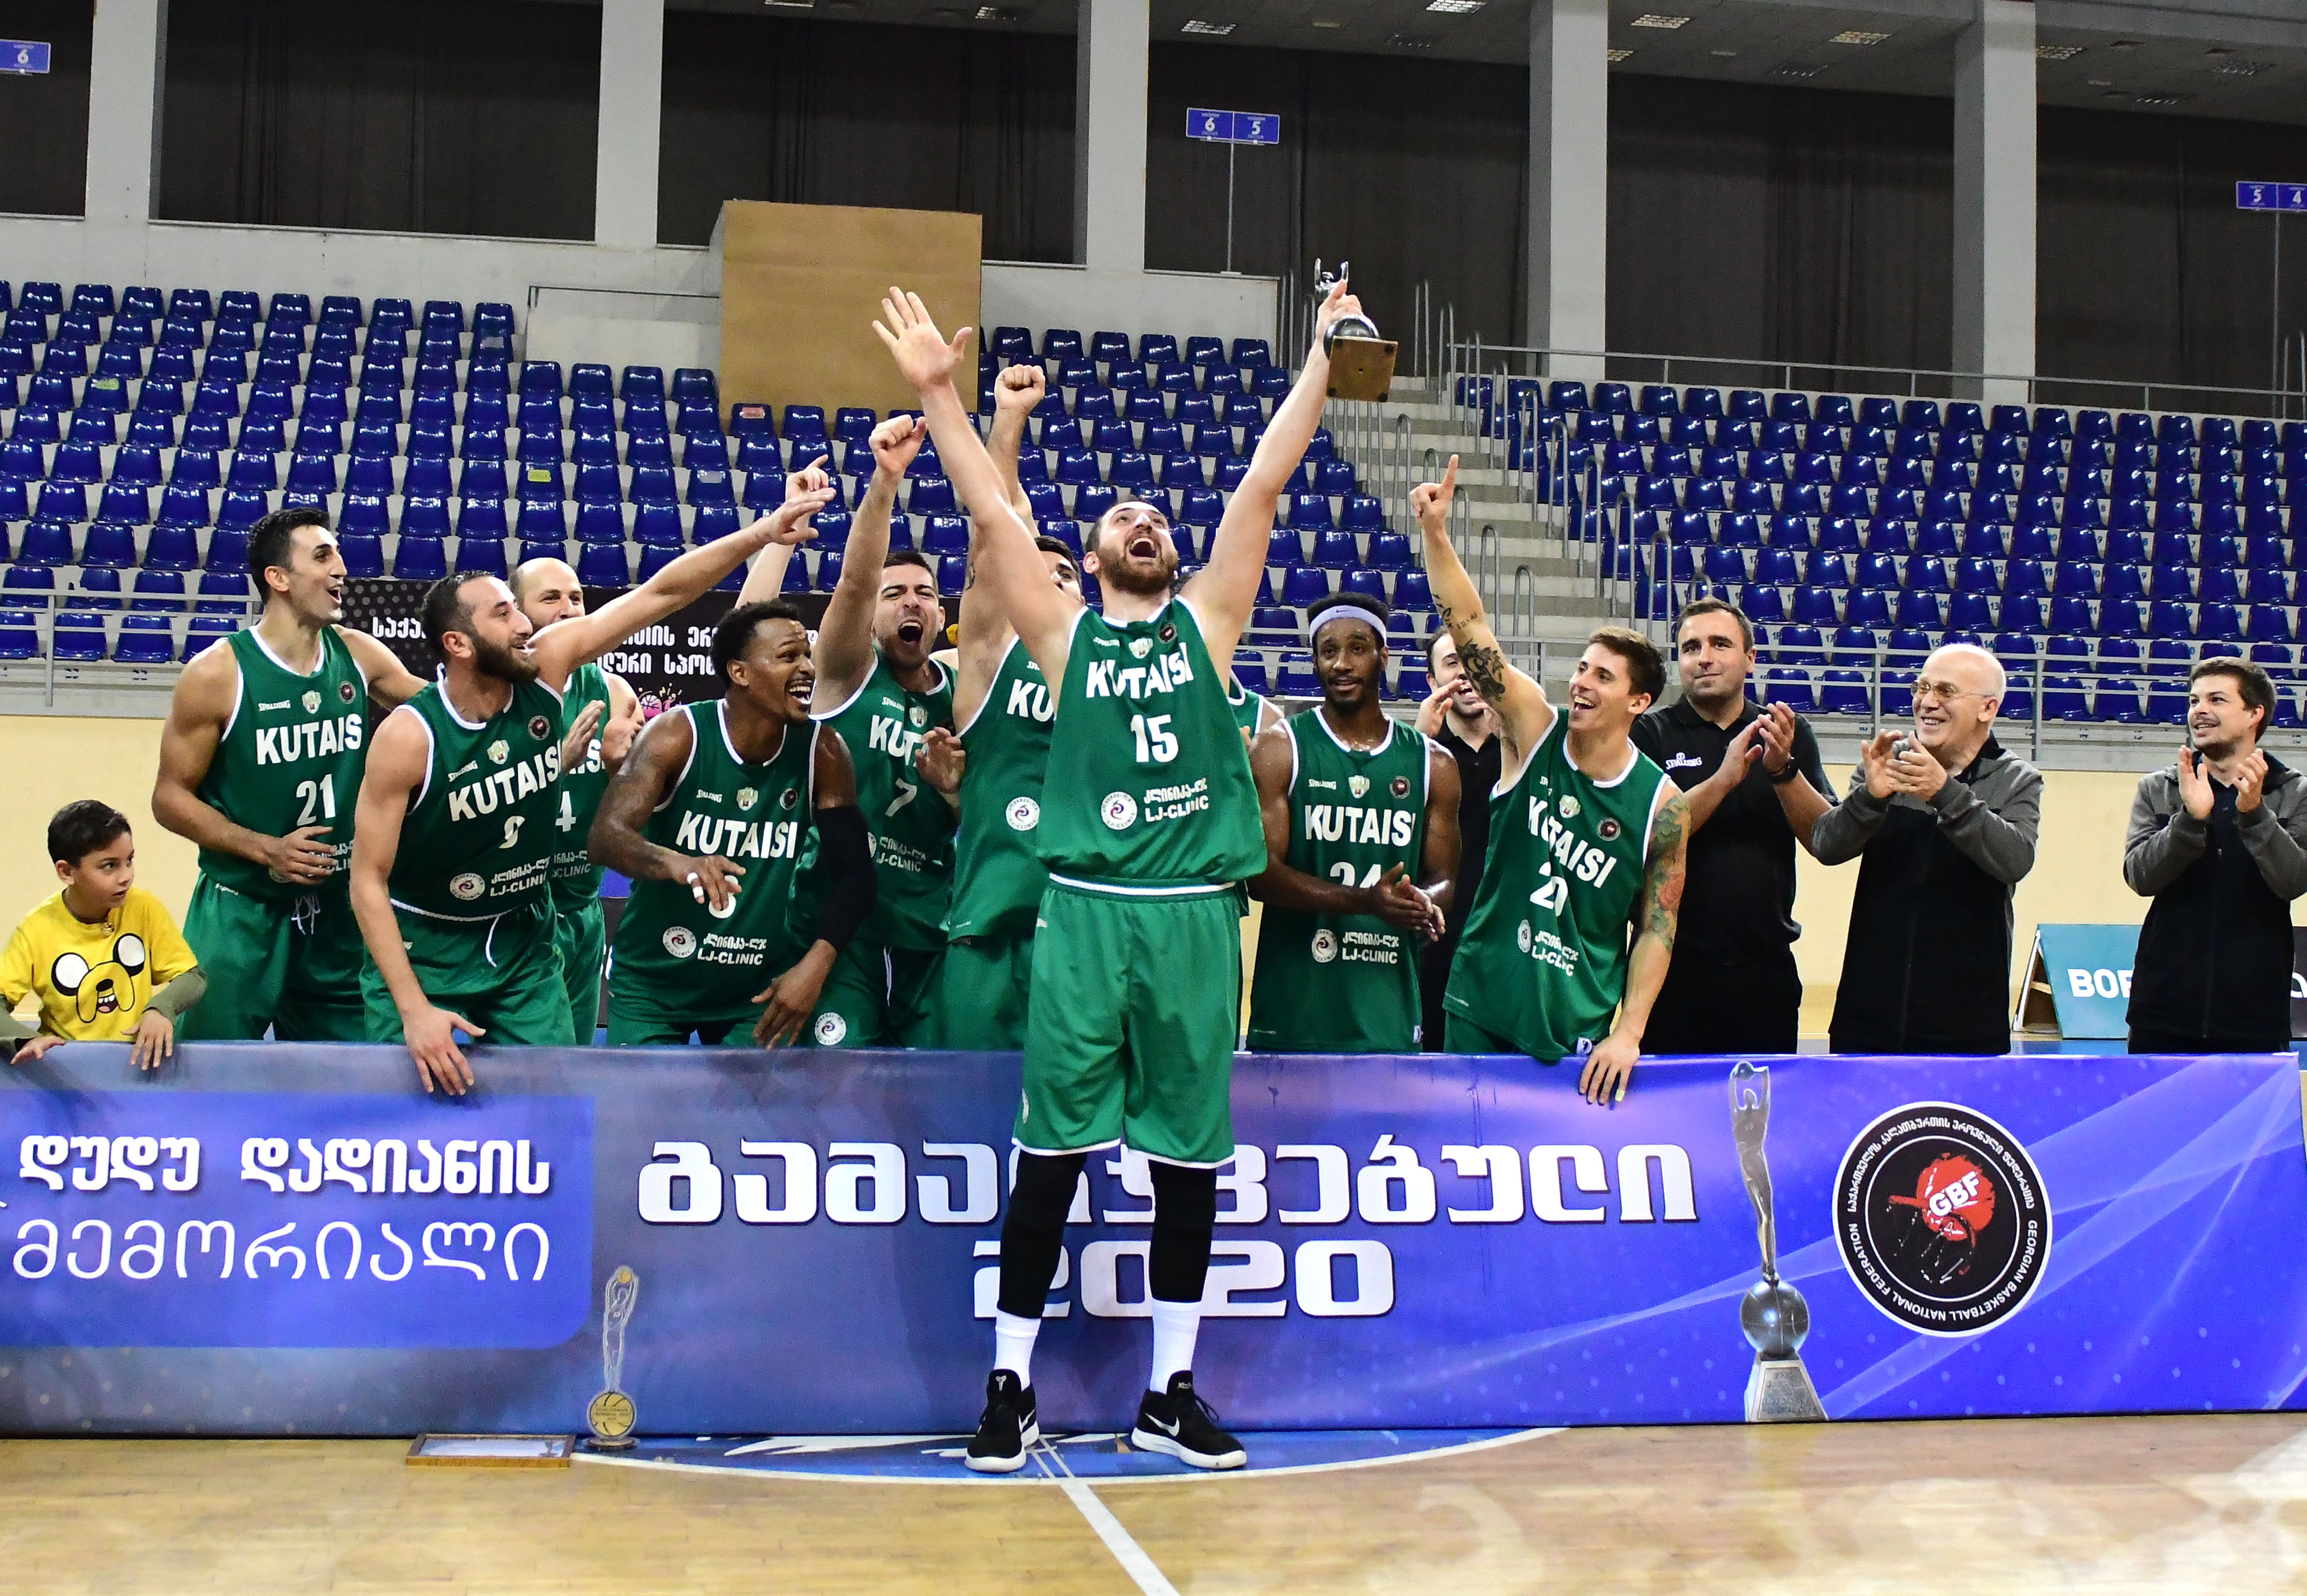 Kutaisi won the Dudu Dadiani Memorial for the second time